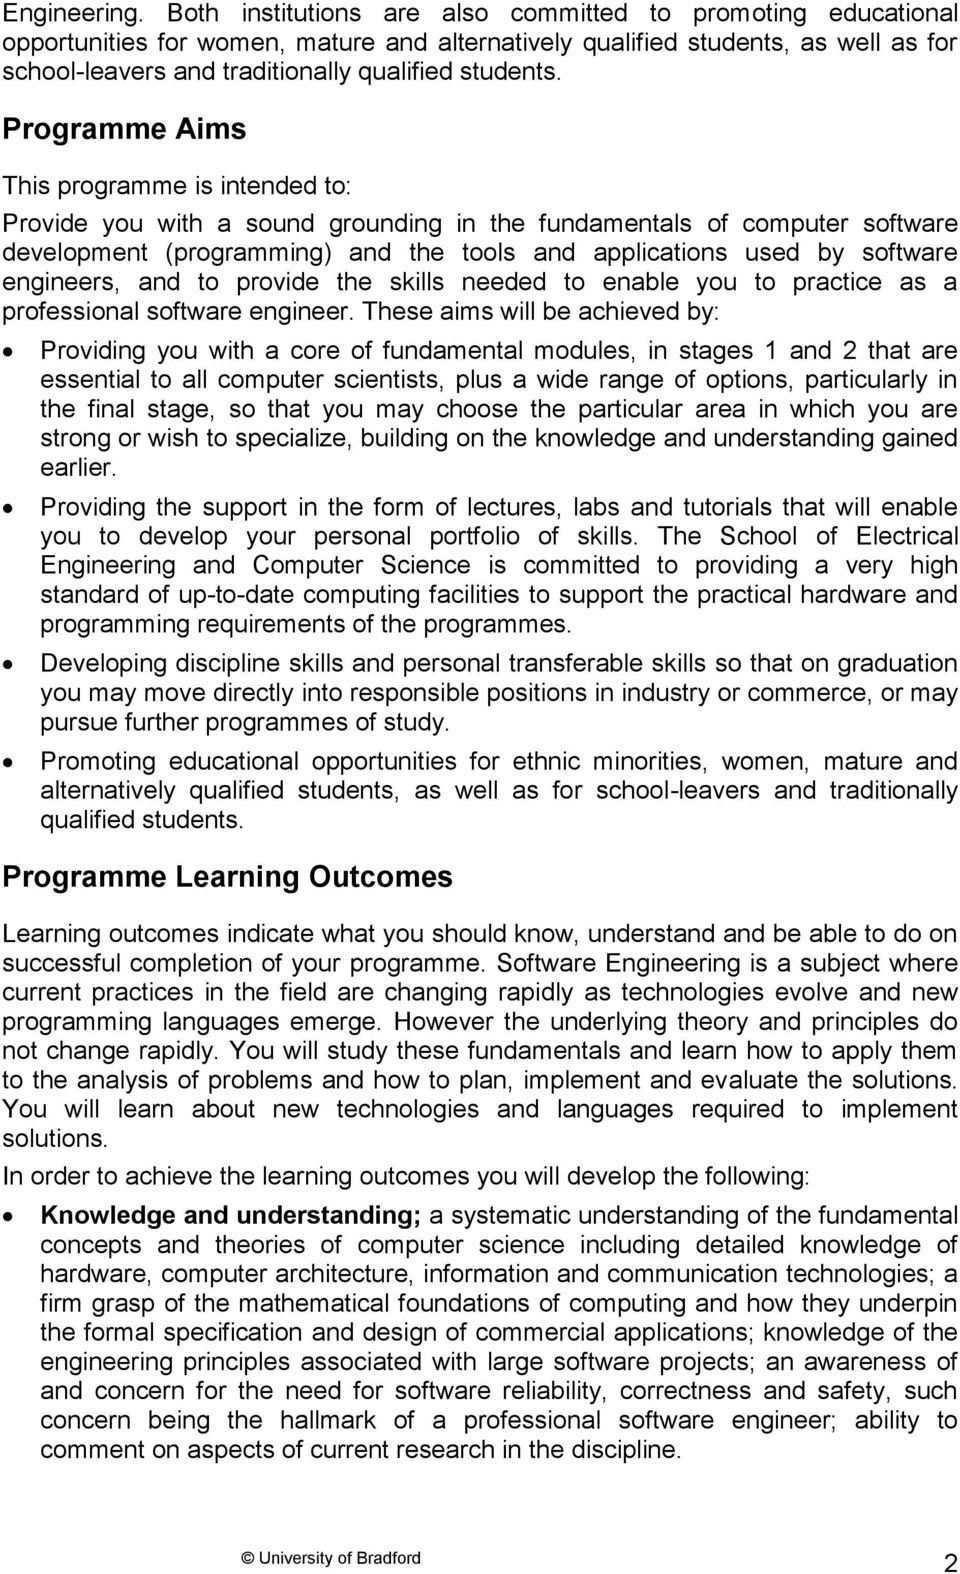 Programme Aims This programme is intended to: Provide you with a sound grounding in the fundamentals of computer software development (programming) and the tools and applications used by software